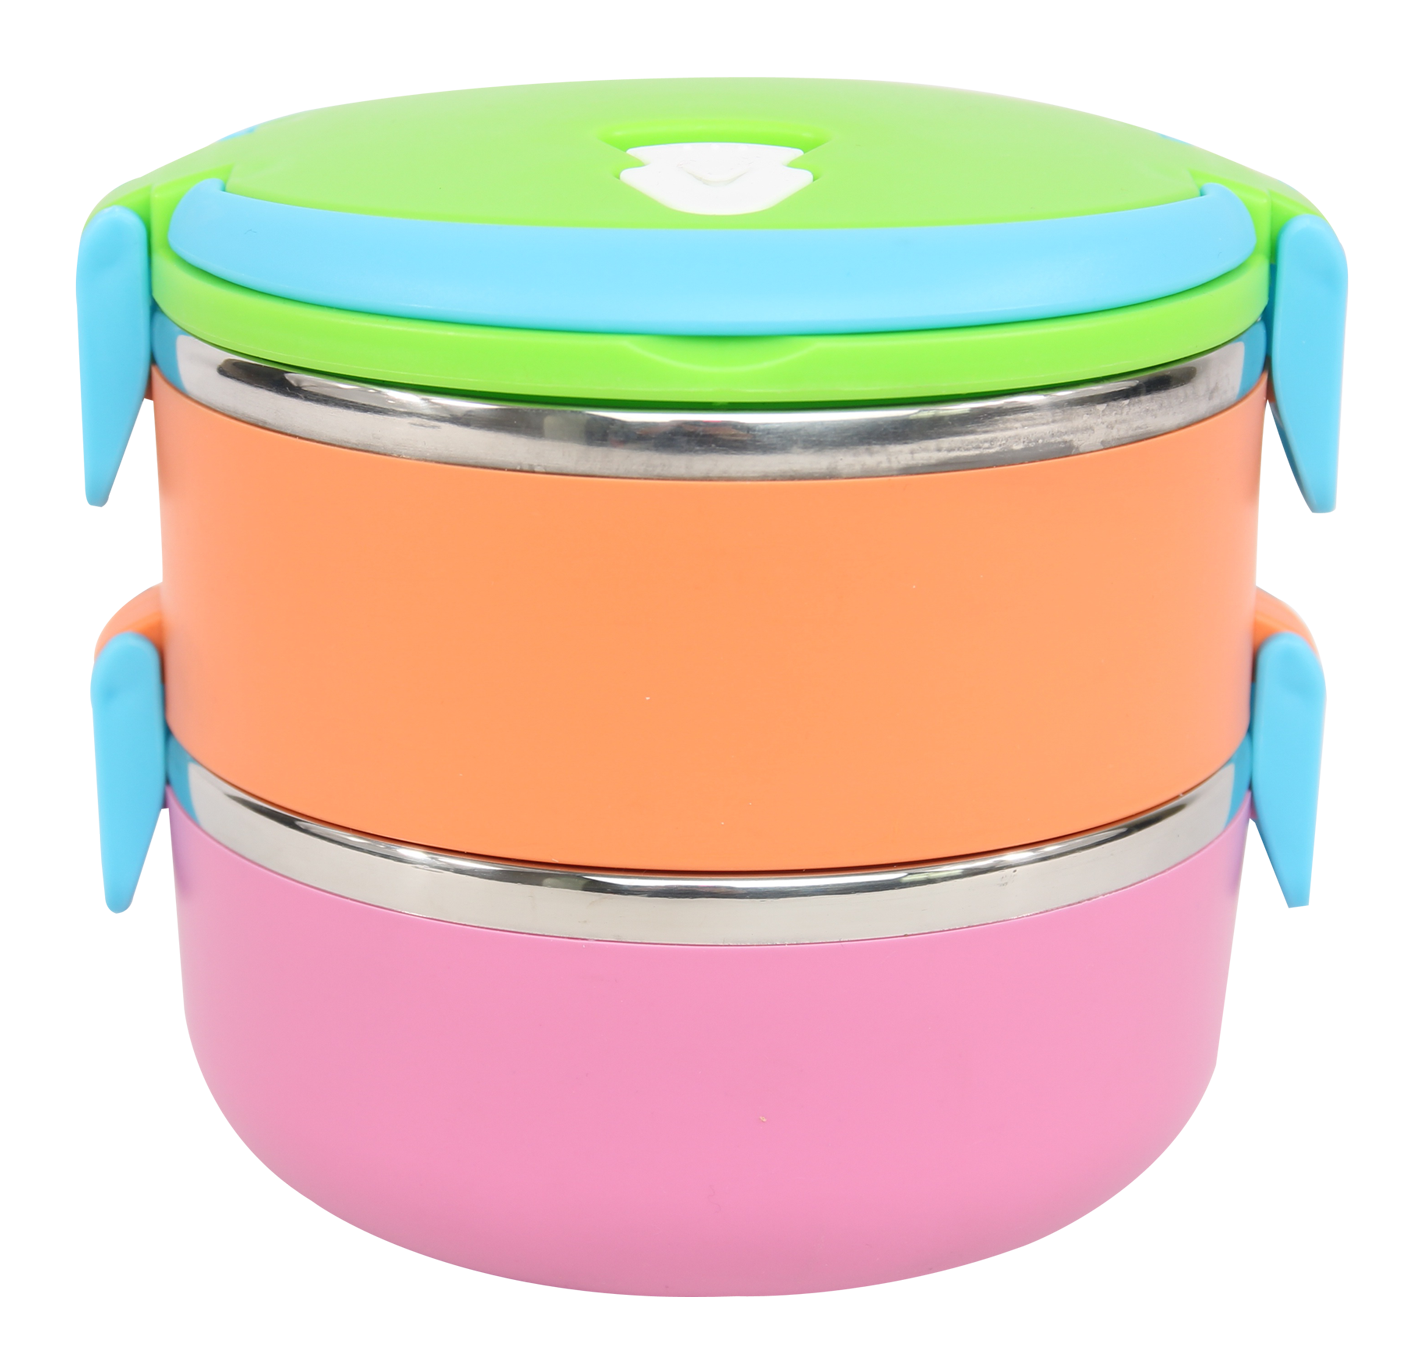 Box png image purepng. Lunchbox clipart student lunch